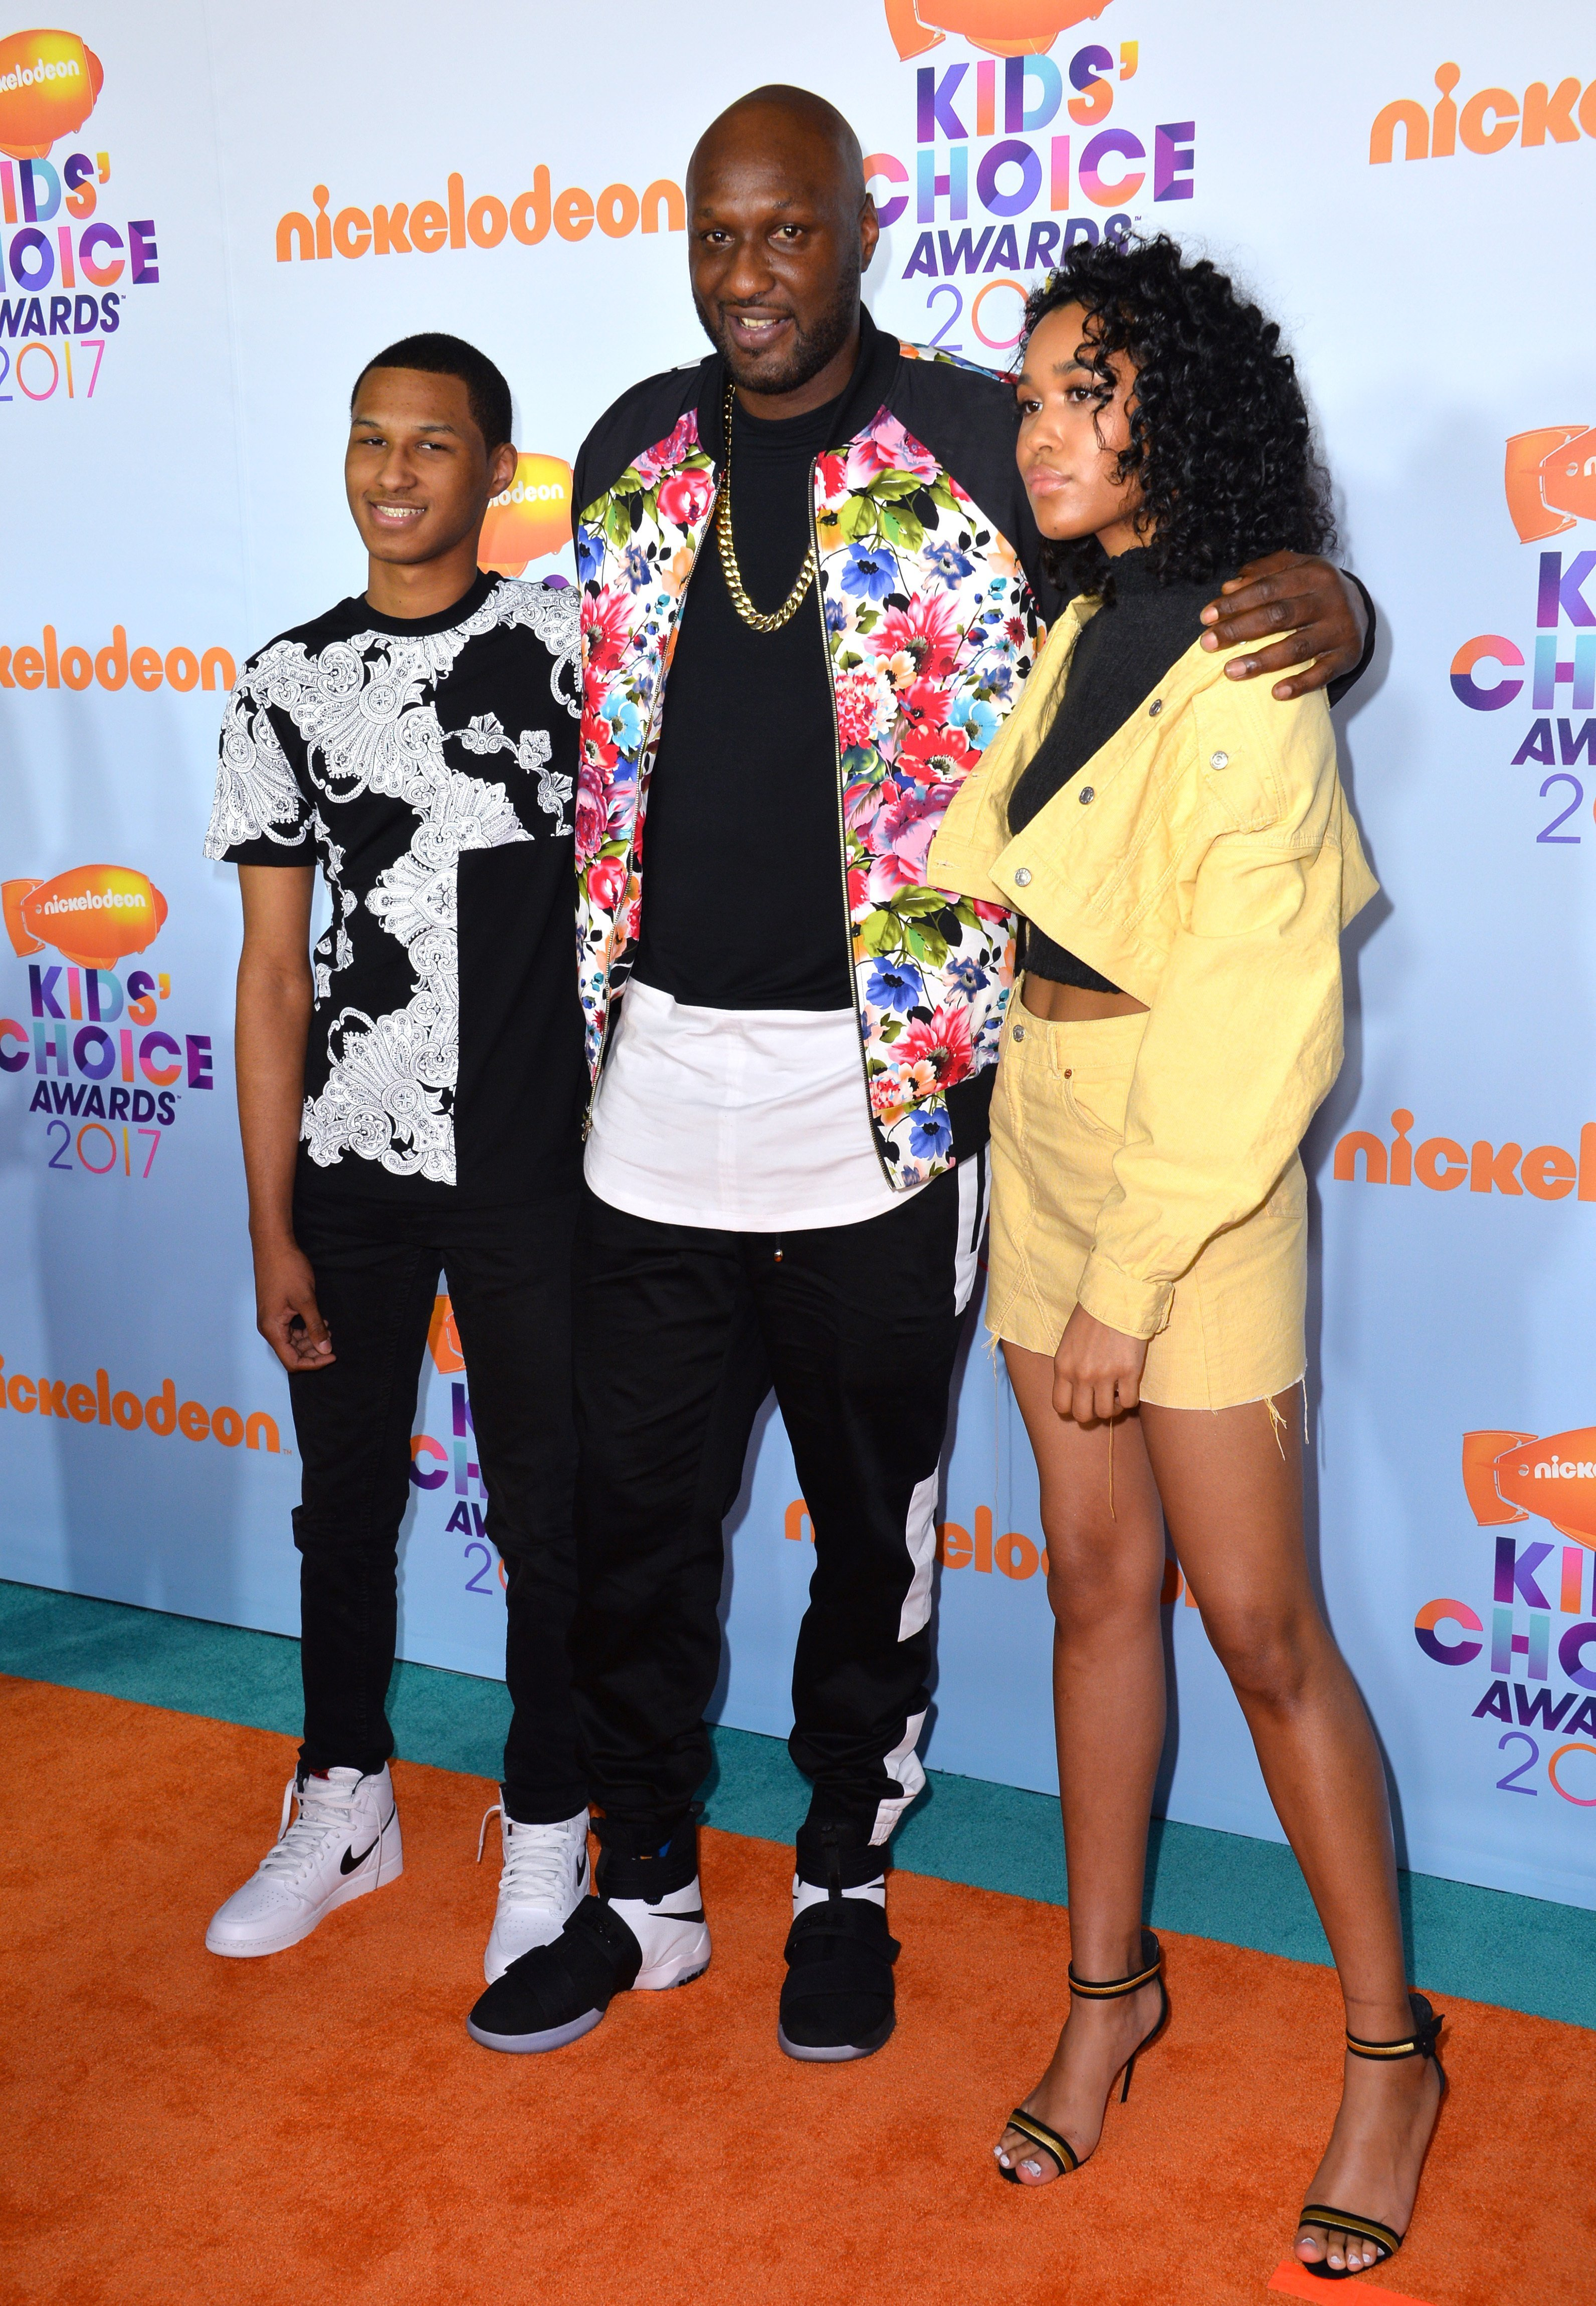 (L-R) Lamar Odom Jr., Lamar Odom, & Destiny Odom at the Nickelodeon Kids' Choice Awards on Mar. 11, 2017 in Los Angeles | Photo: Shutterstock